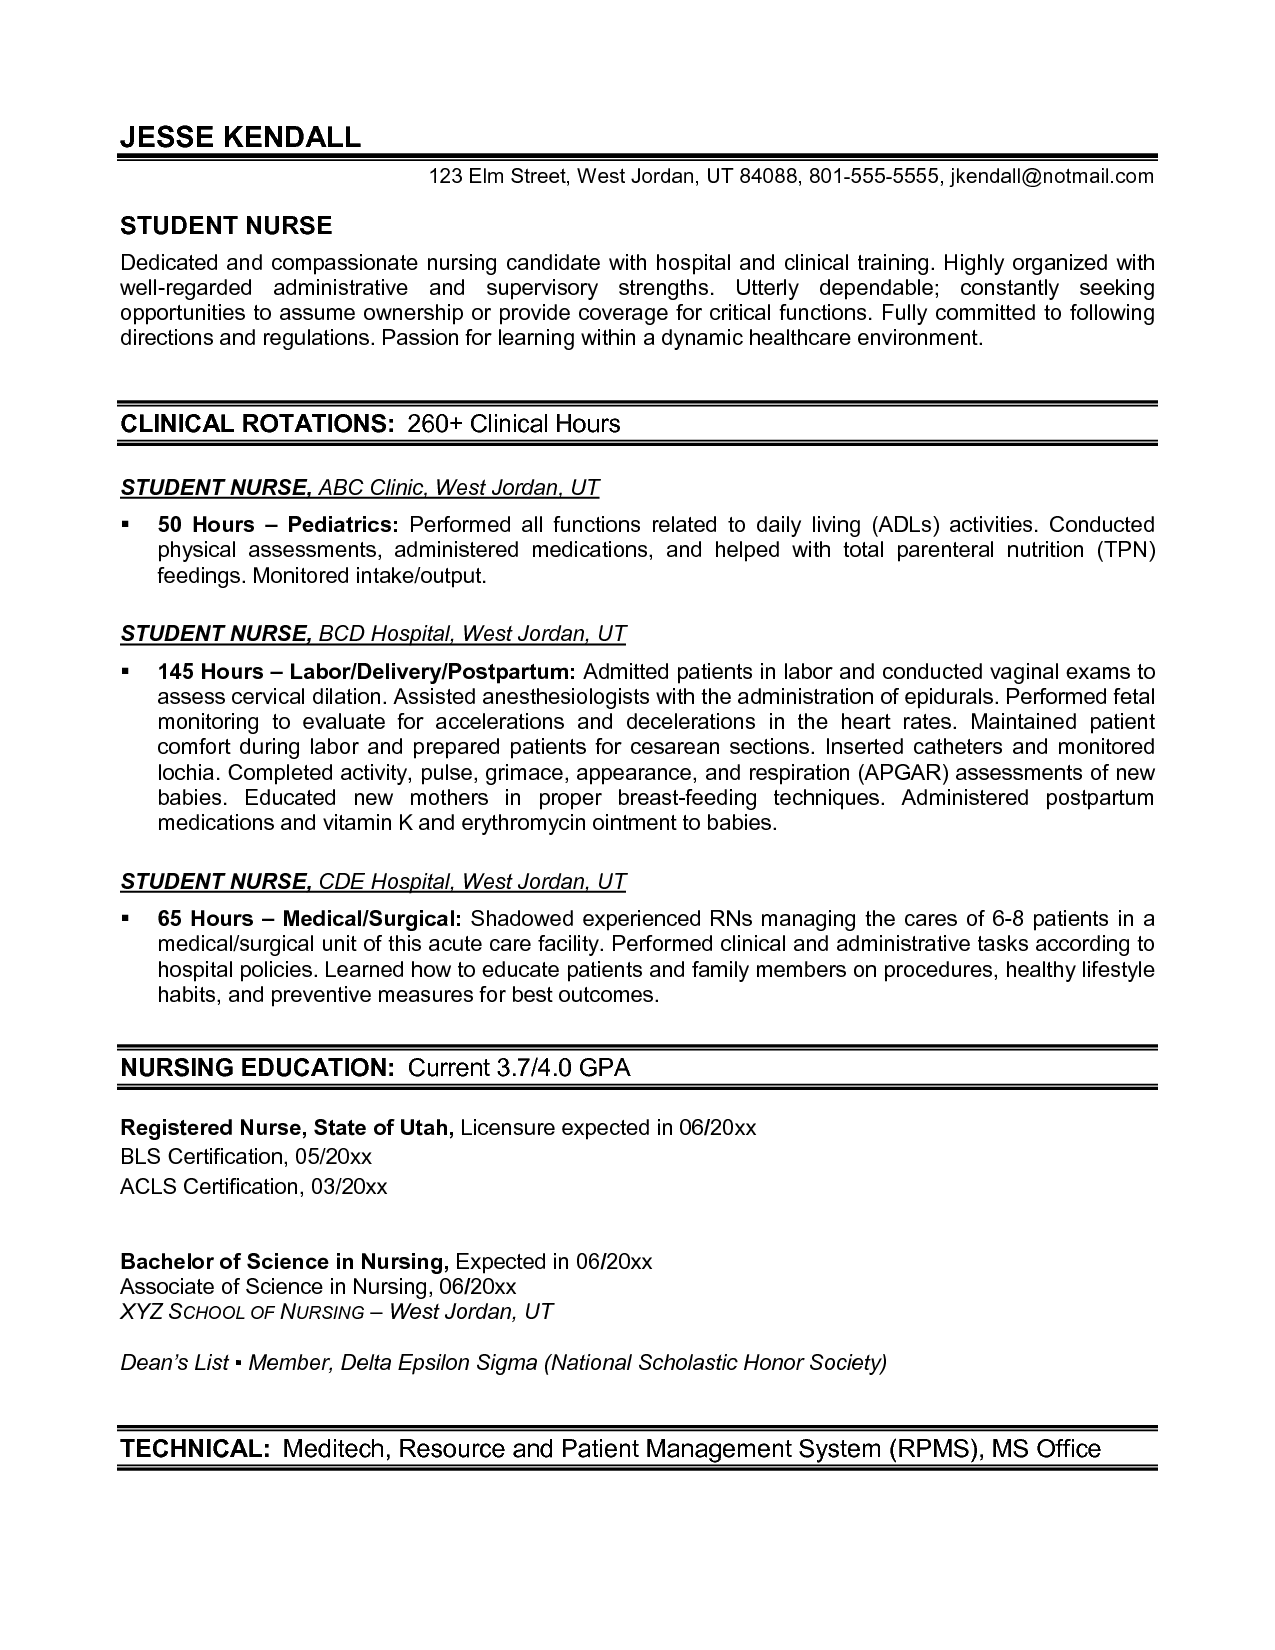 Rn Resume Templates Resume Template Nursing  Nursing  Pinterest  Nursing Resume